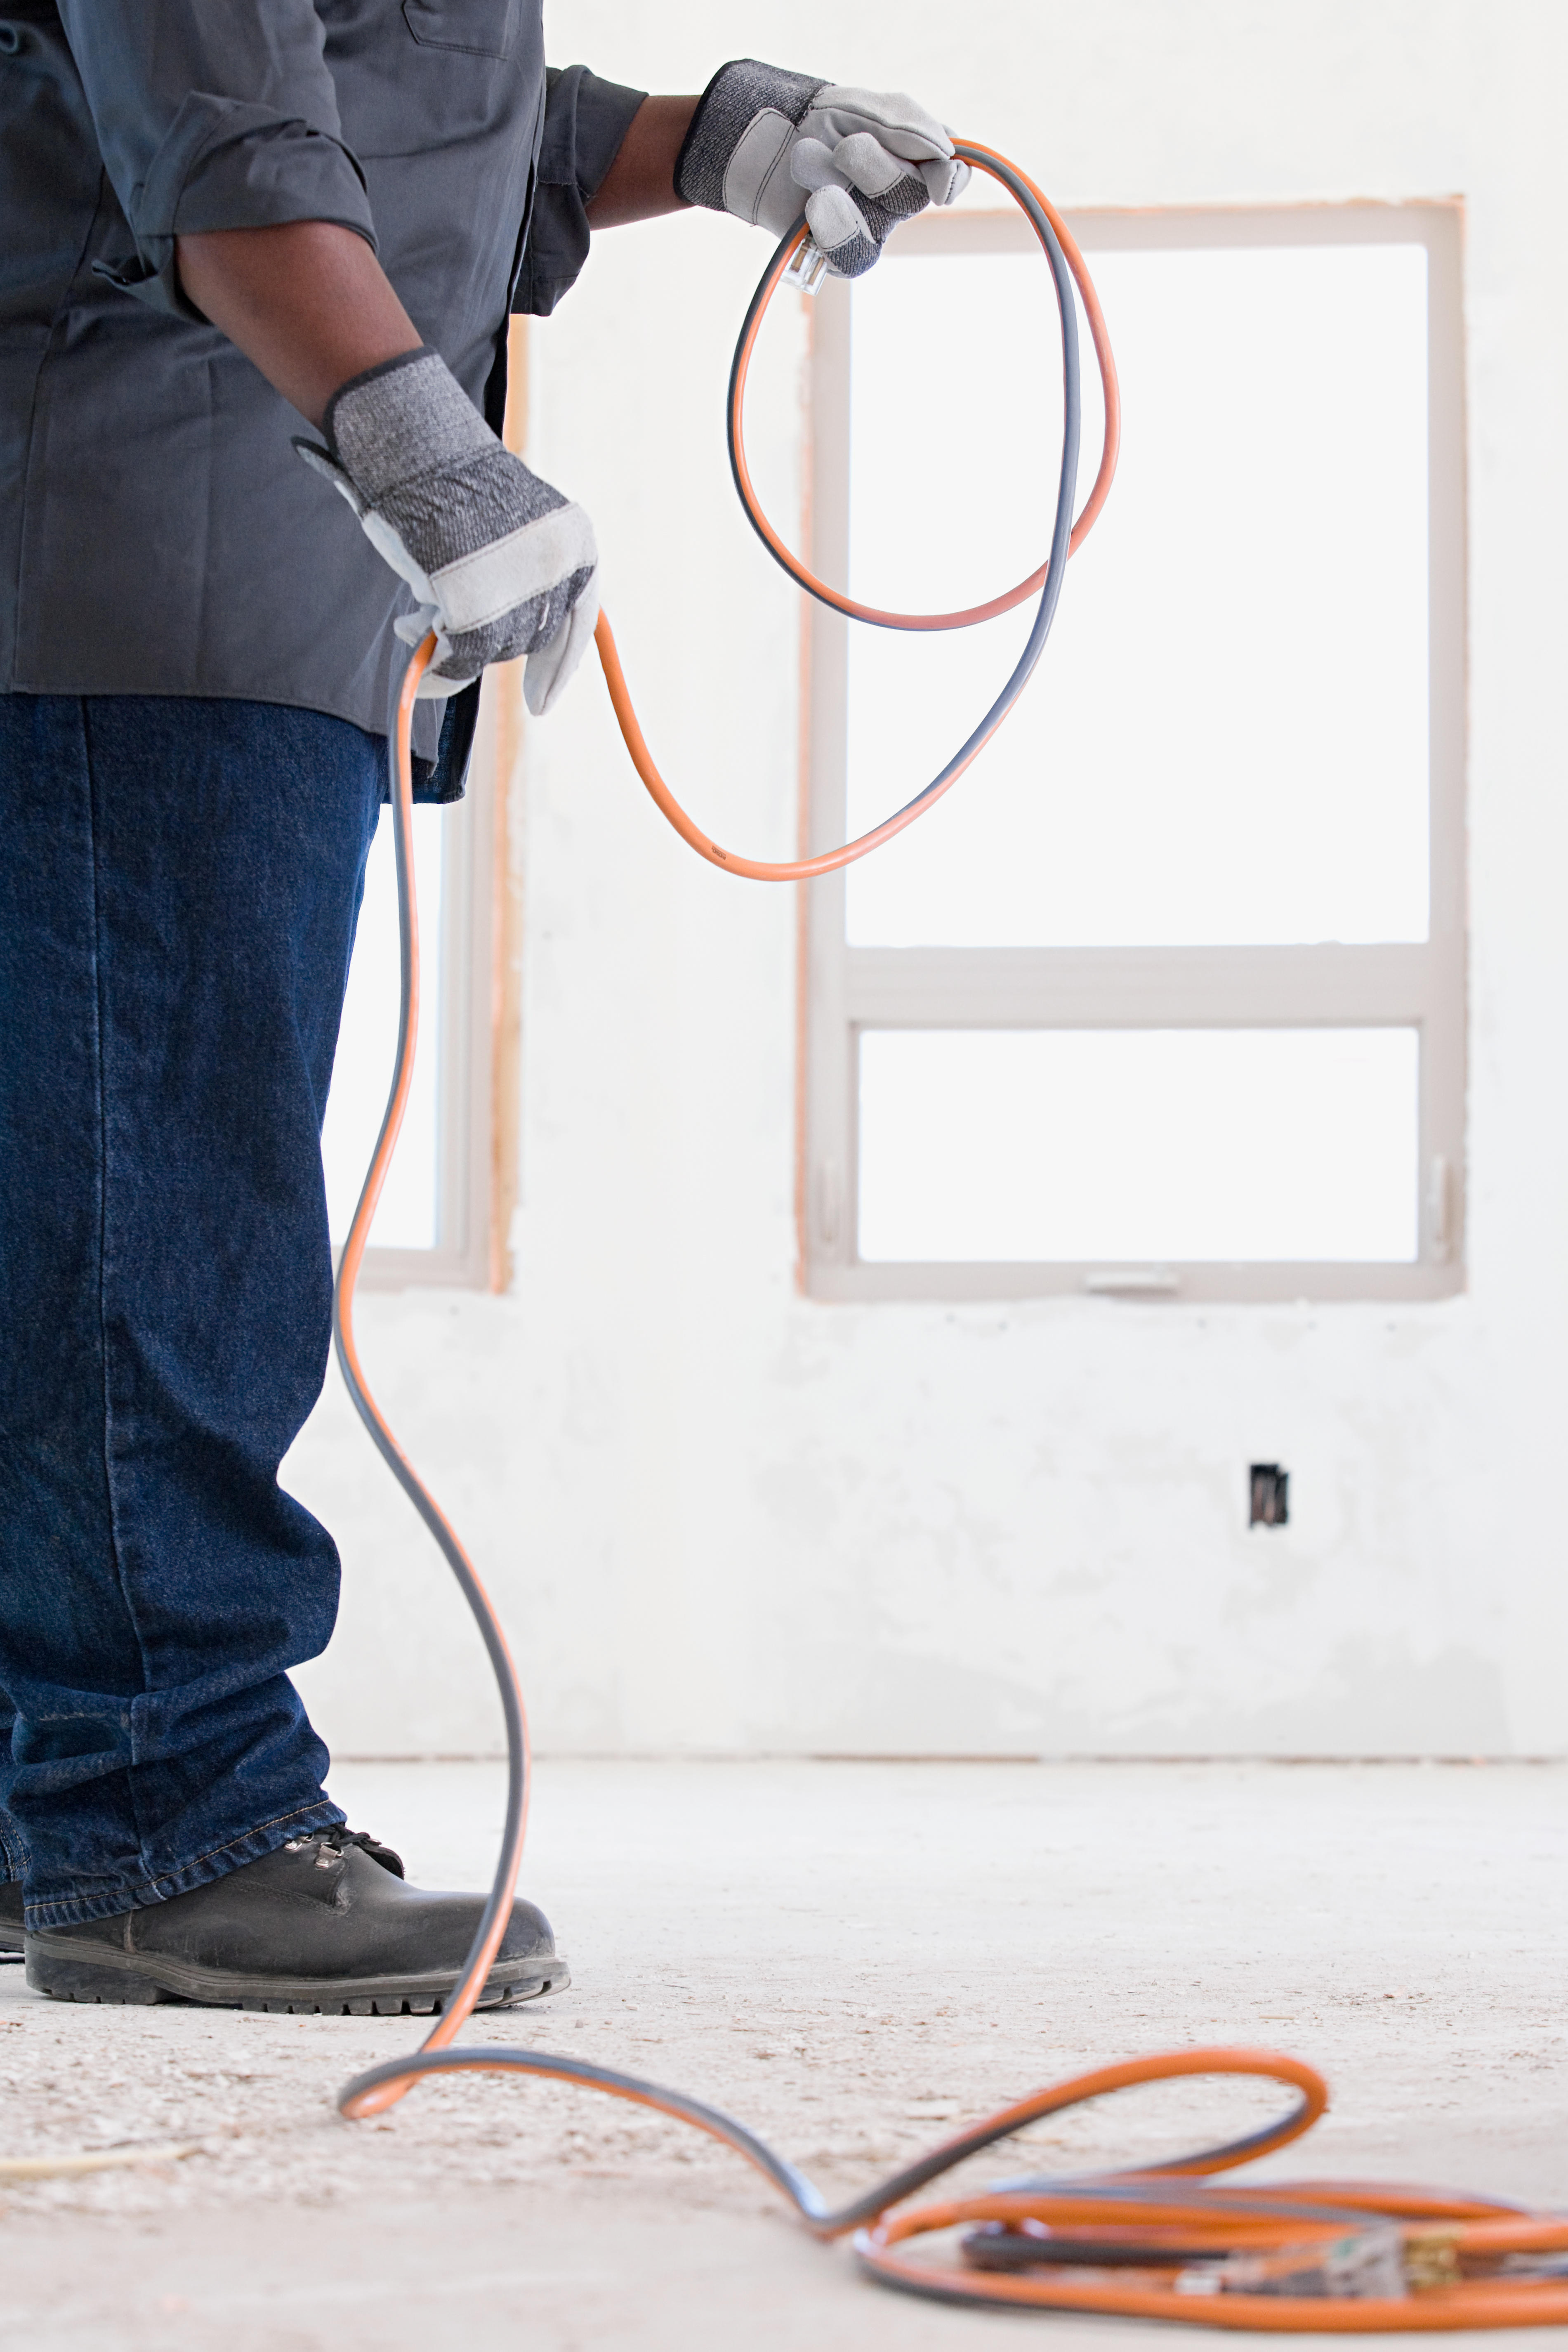 Electrician Holding Electrical Cable